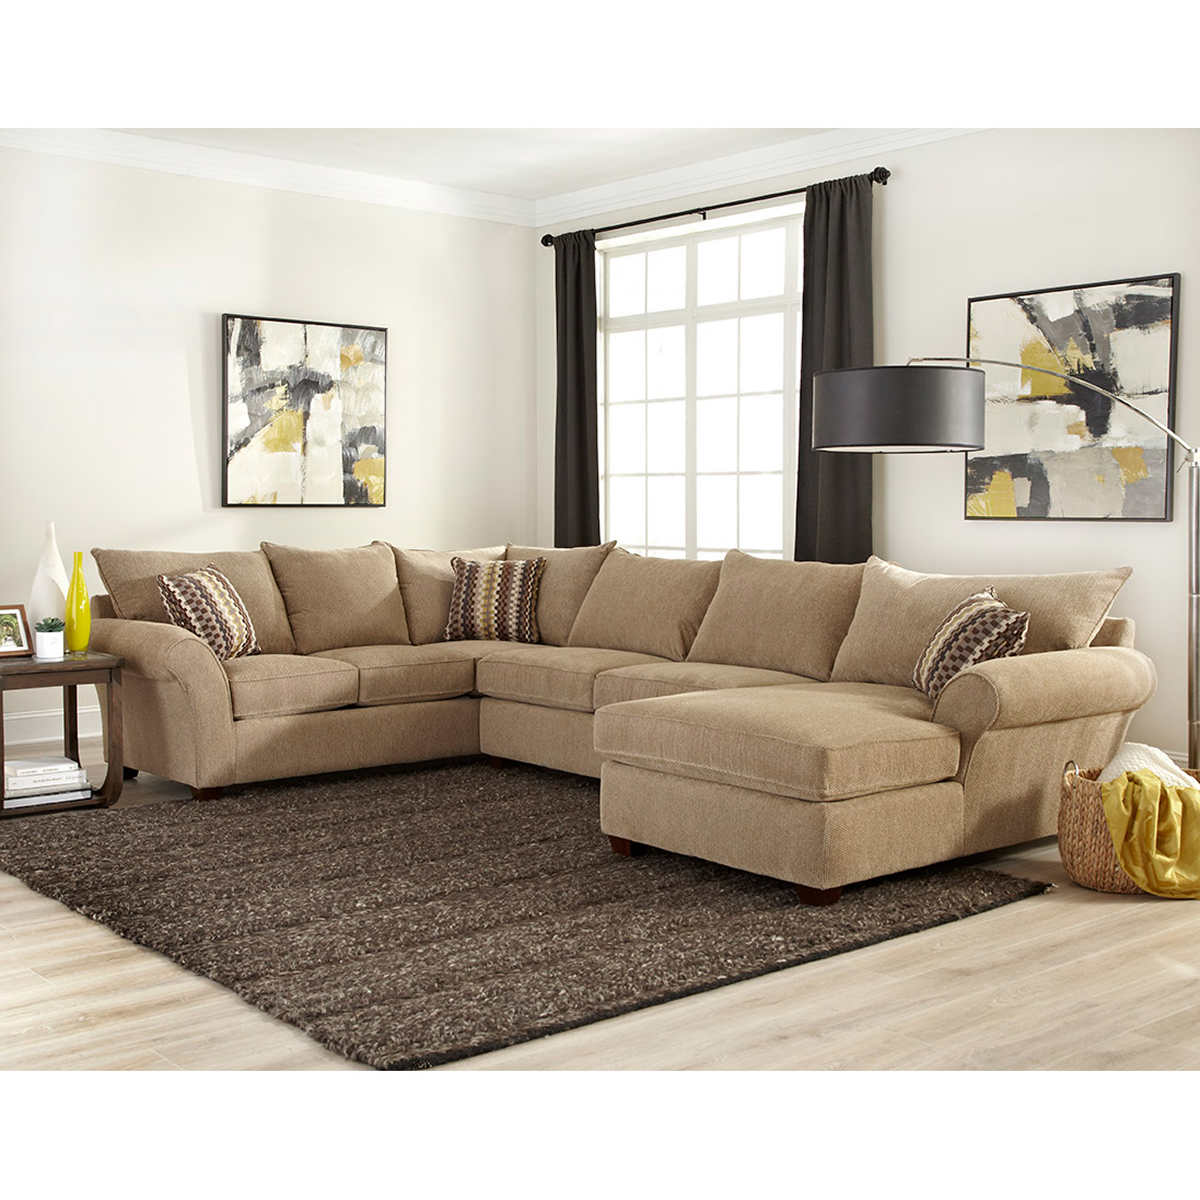 Sectional Fabric Sofa Living Room Modern Furniture